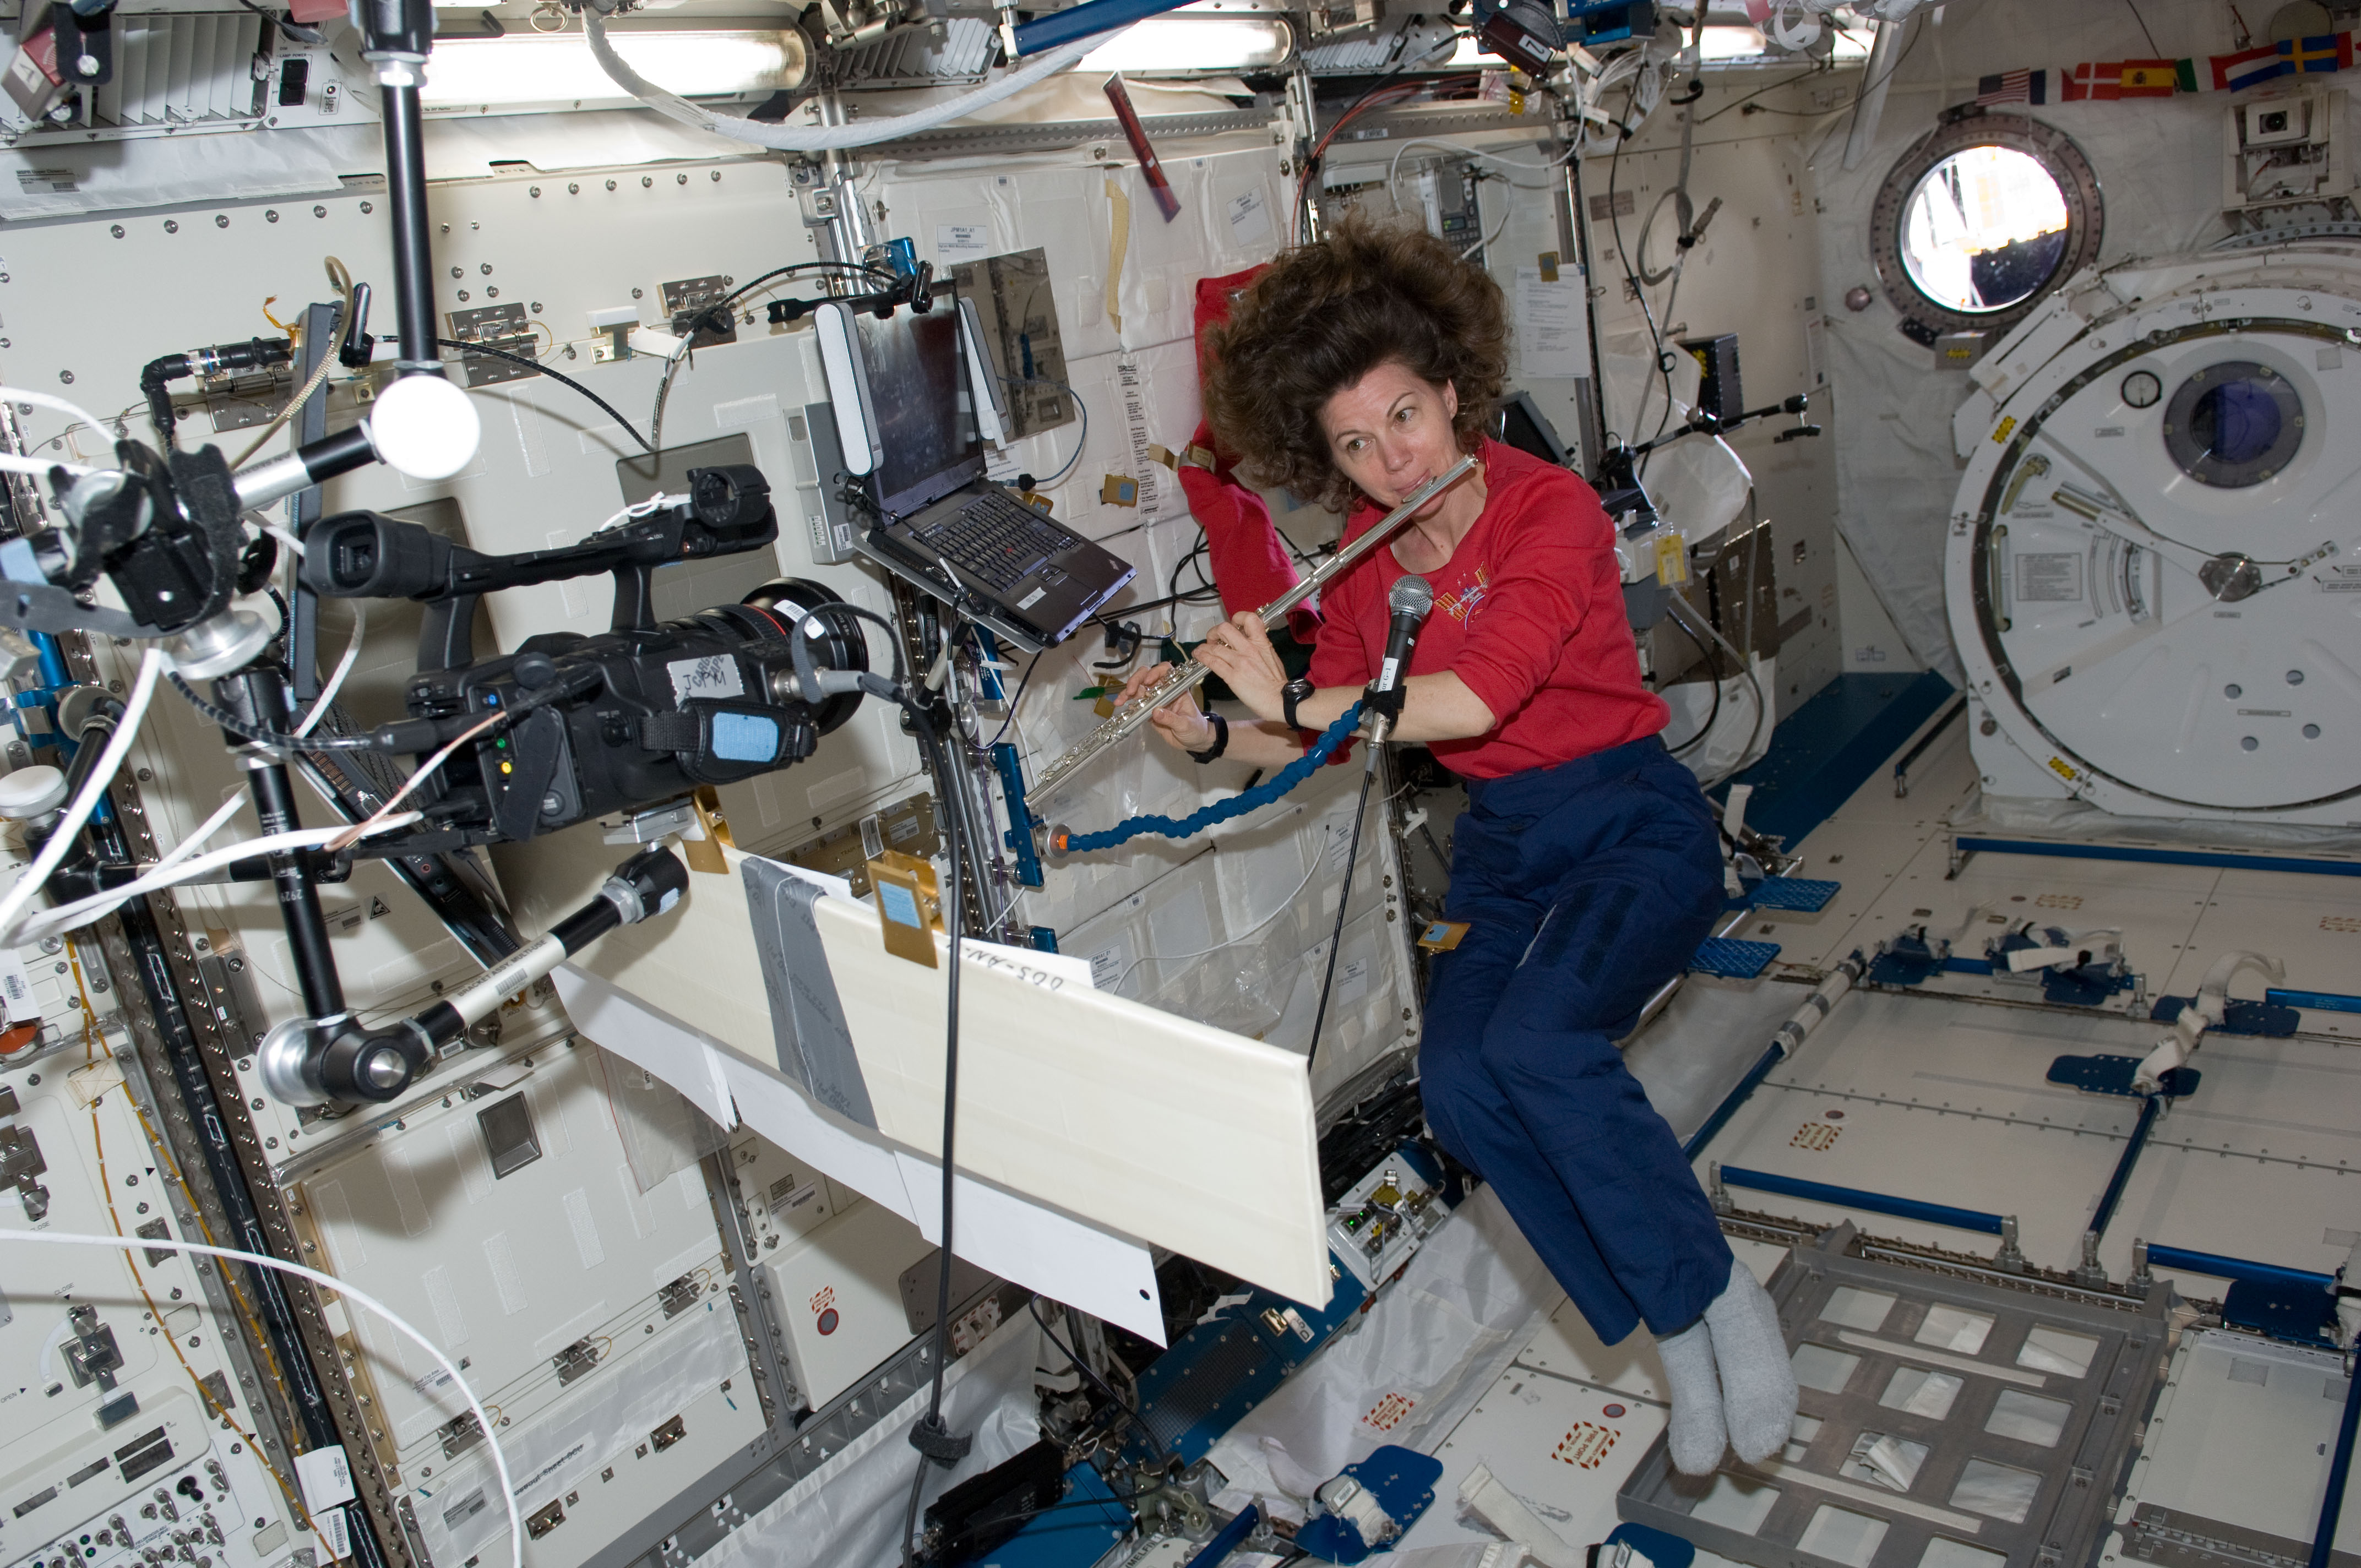 inside space station images - photo #17